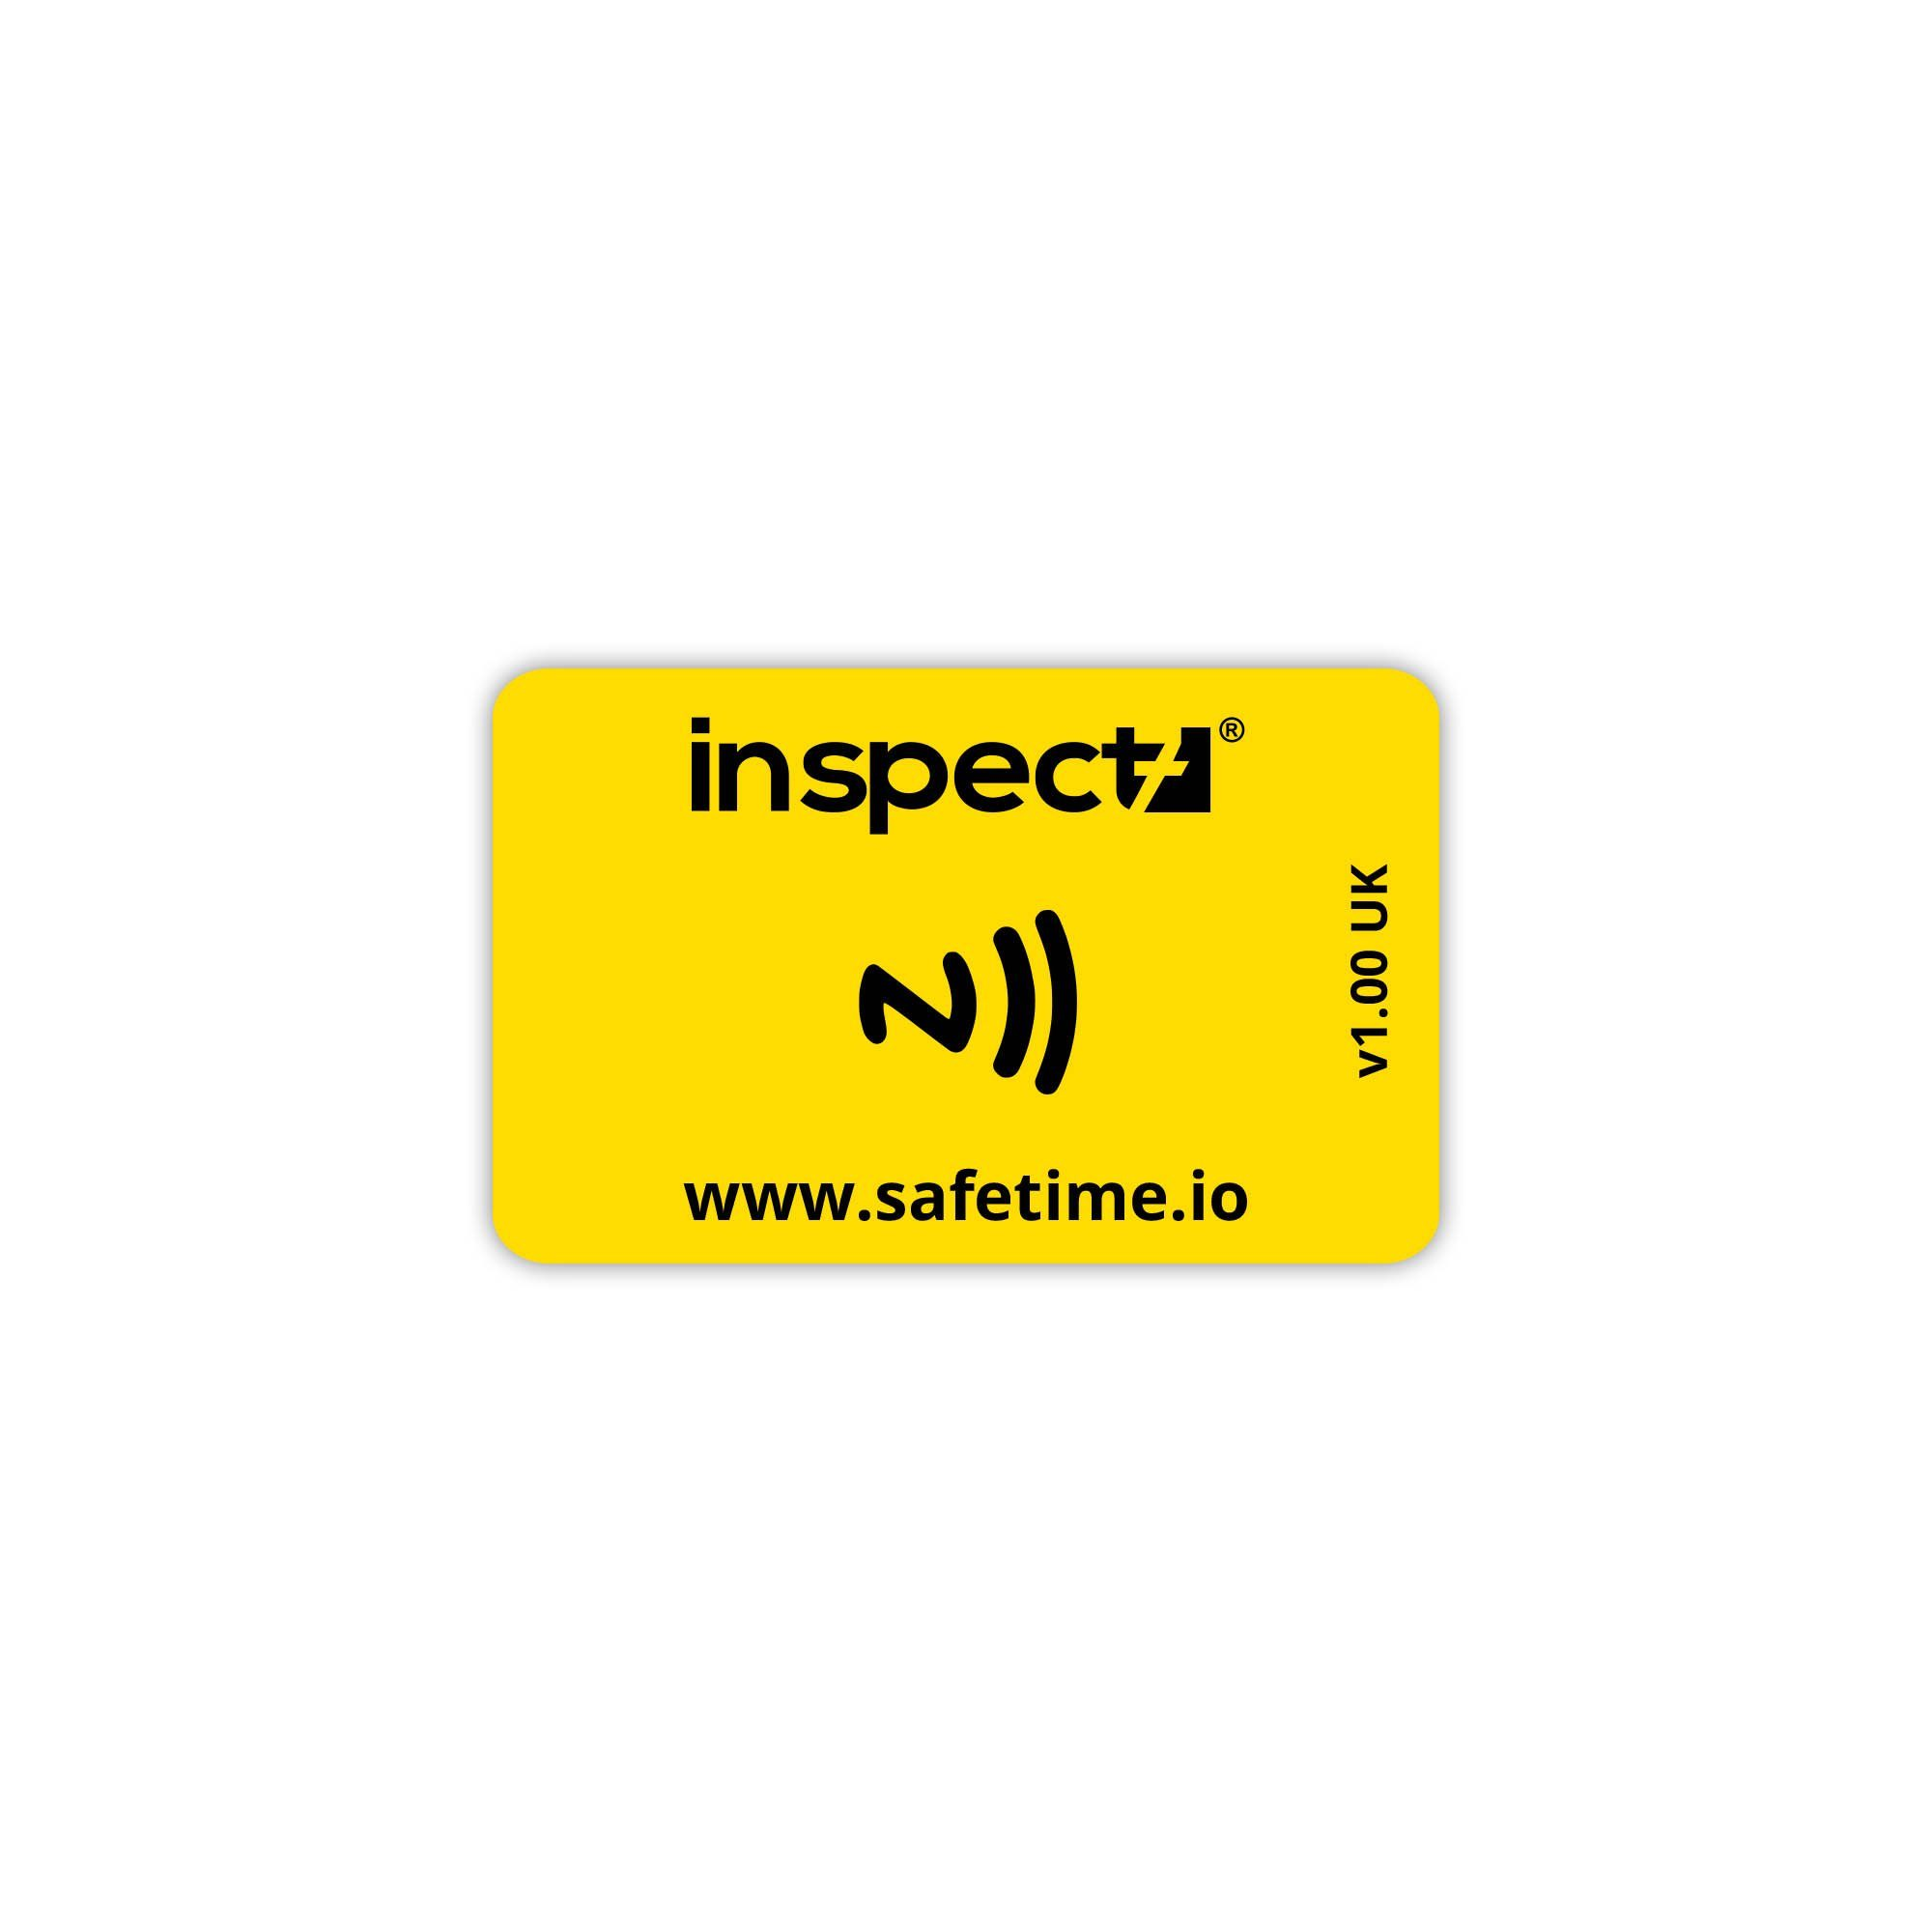 Inspect7 Stickers (Pack of 10)